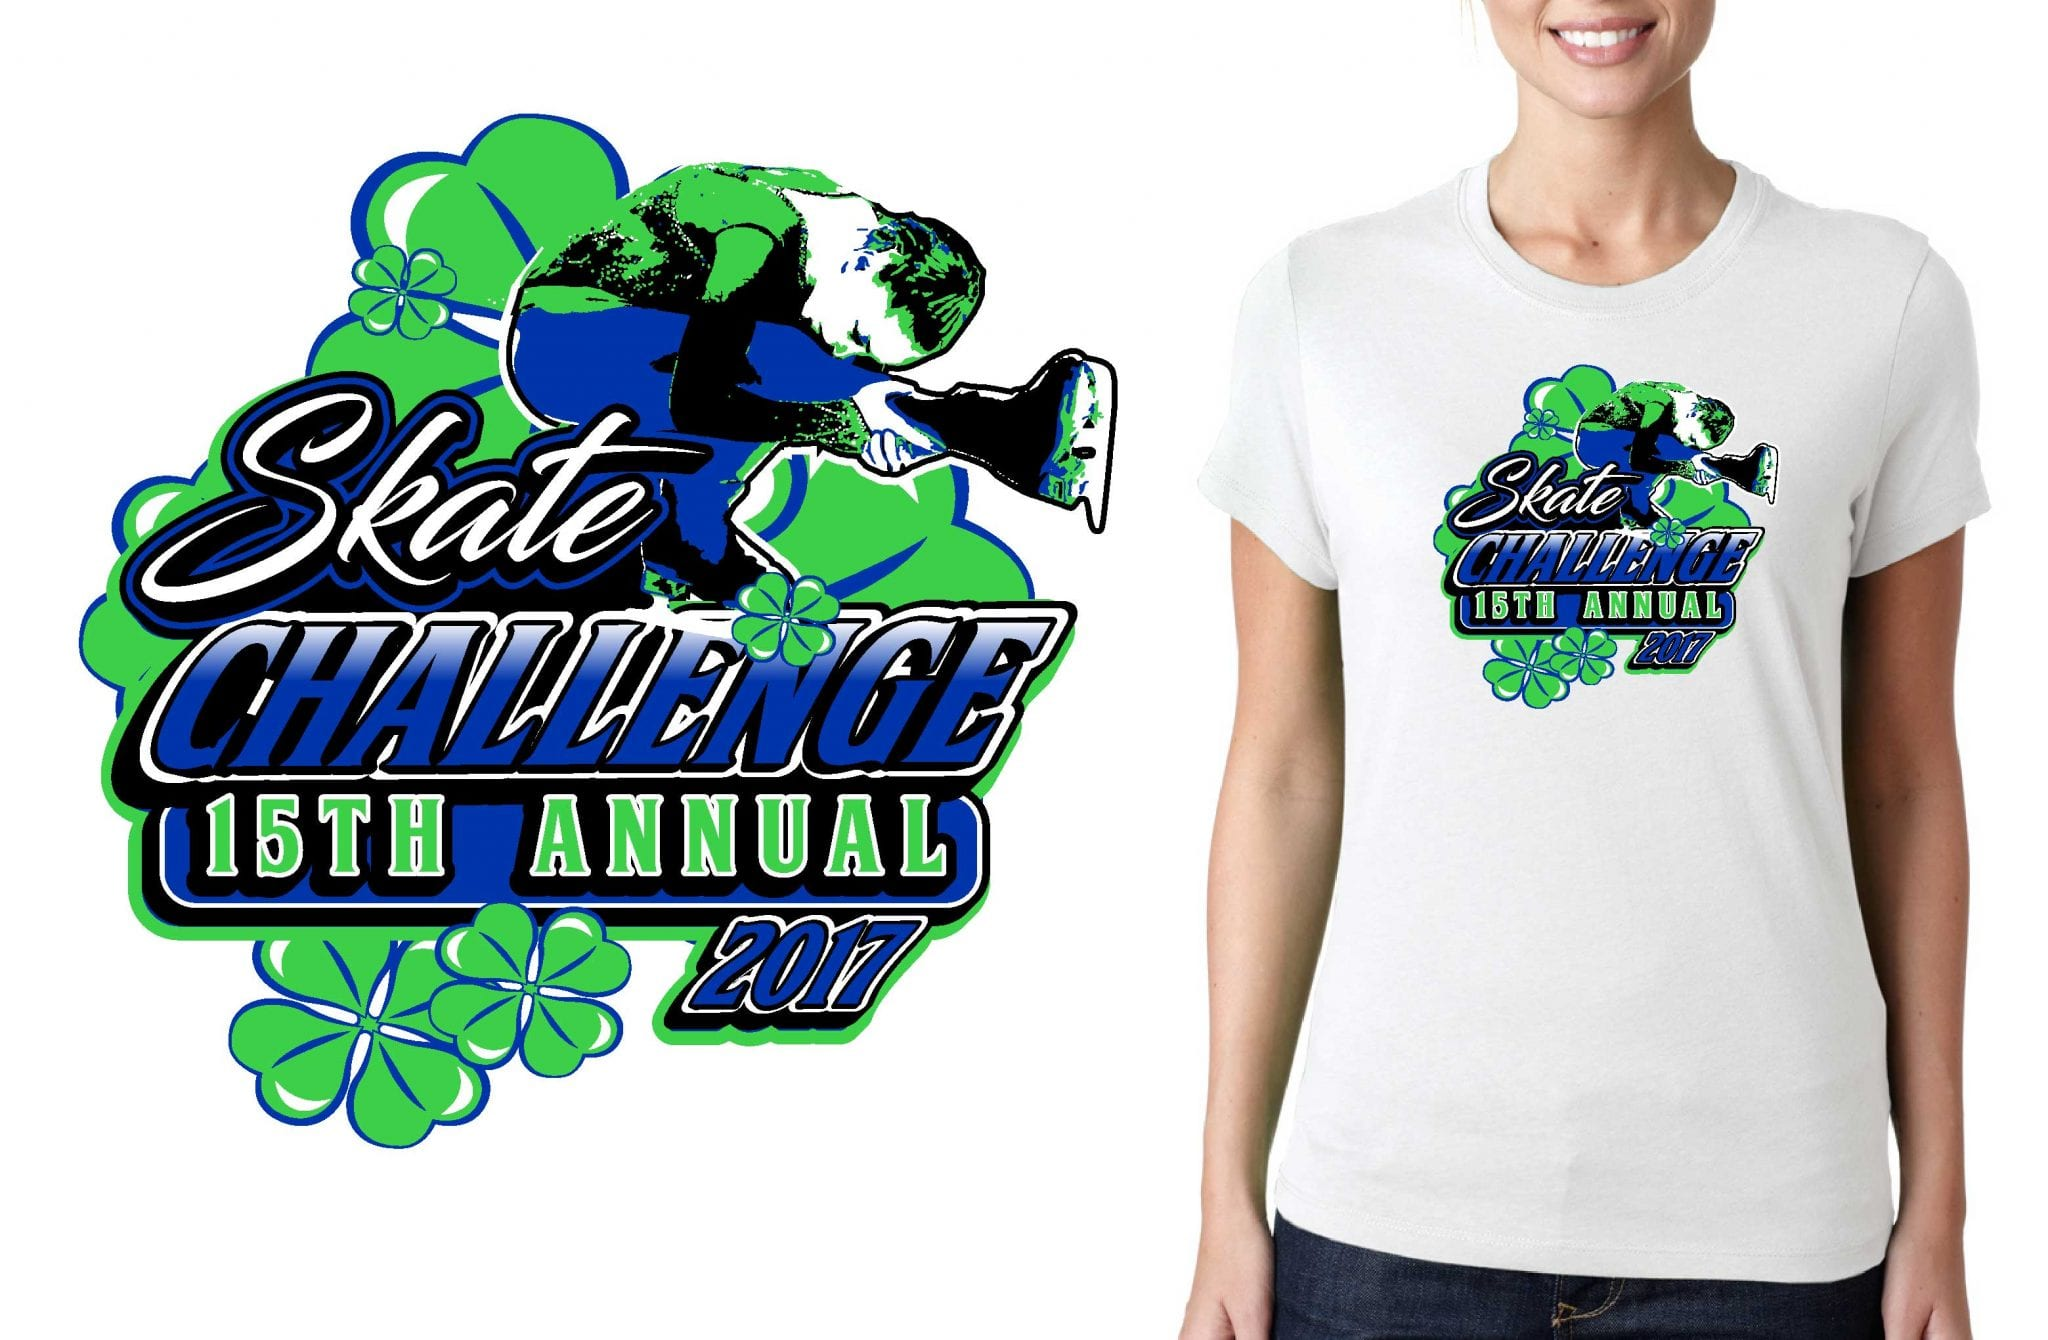 2017 15th Annual Skate Challenge vector logo design for figure skating t-shirt UrArtStudio